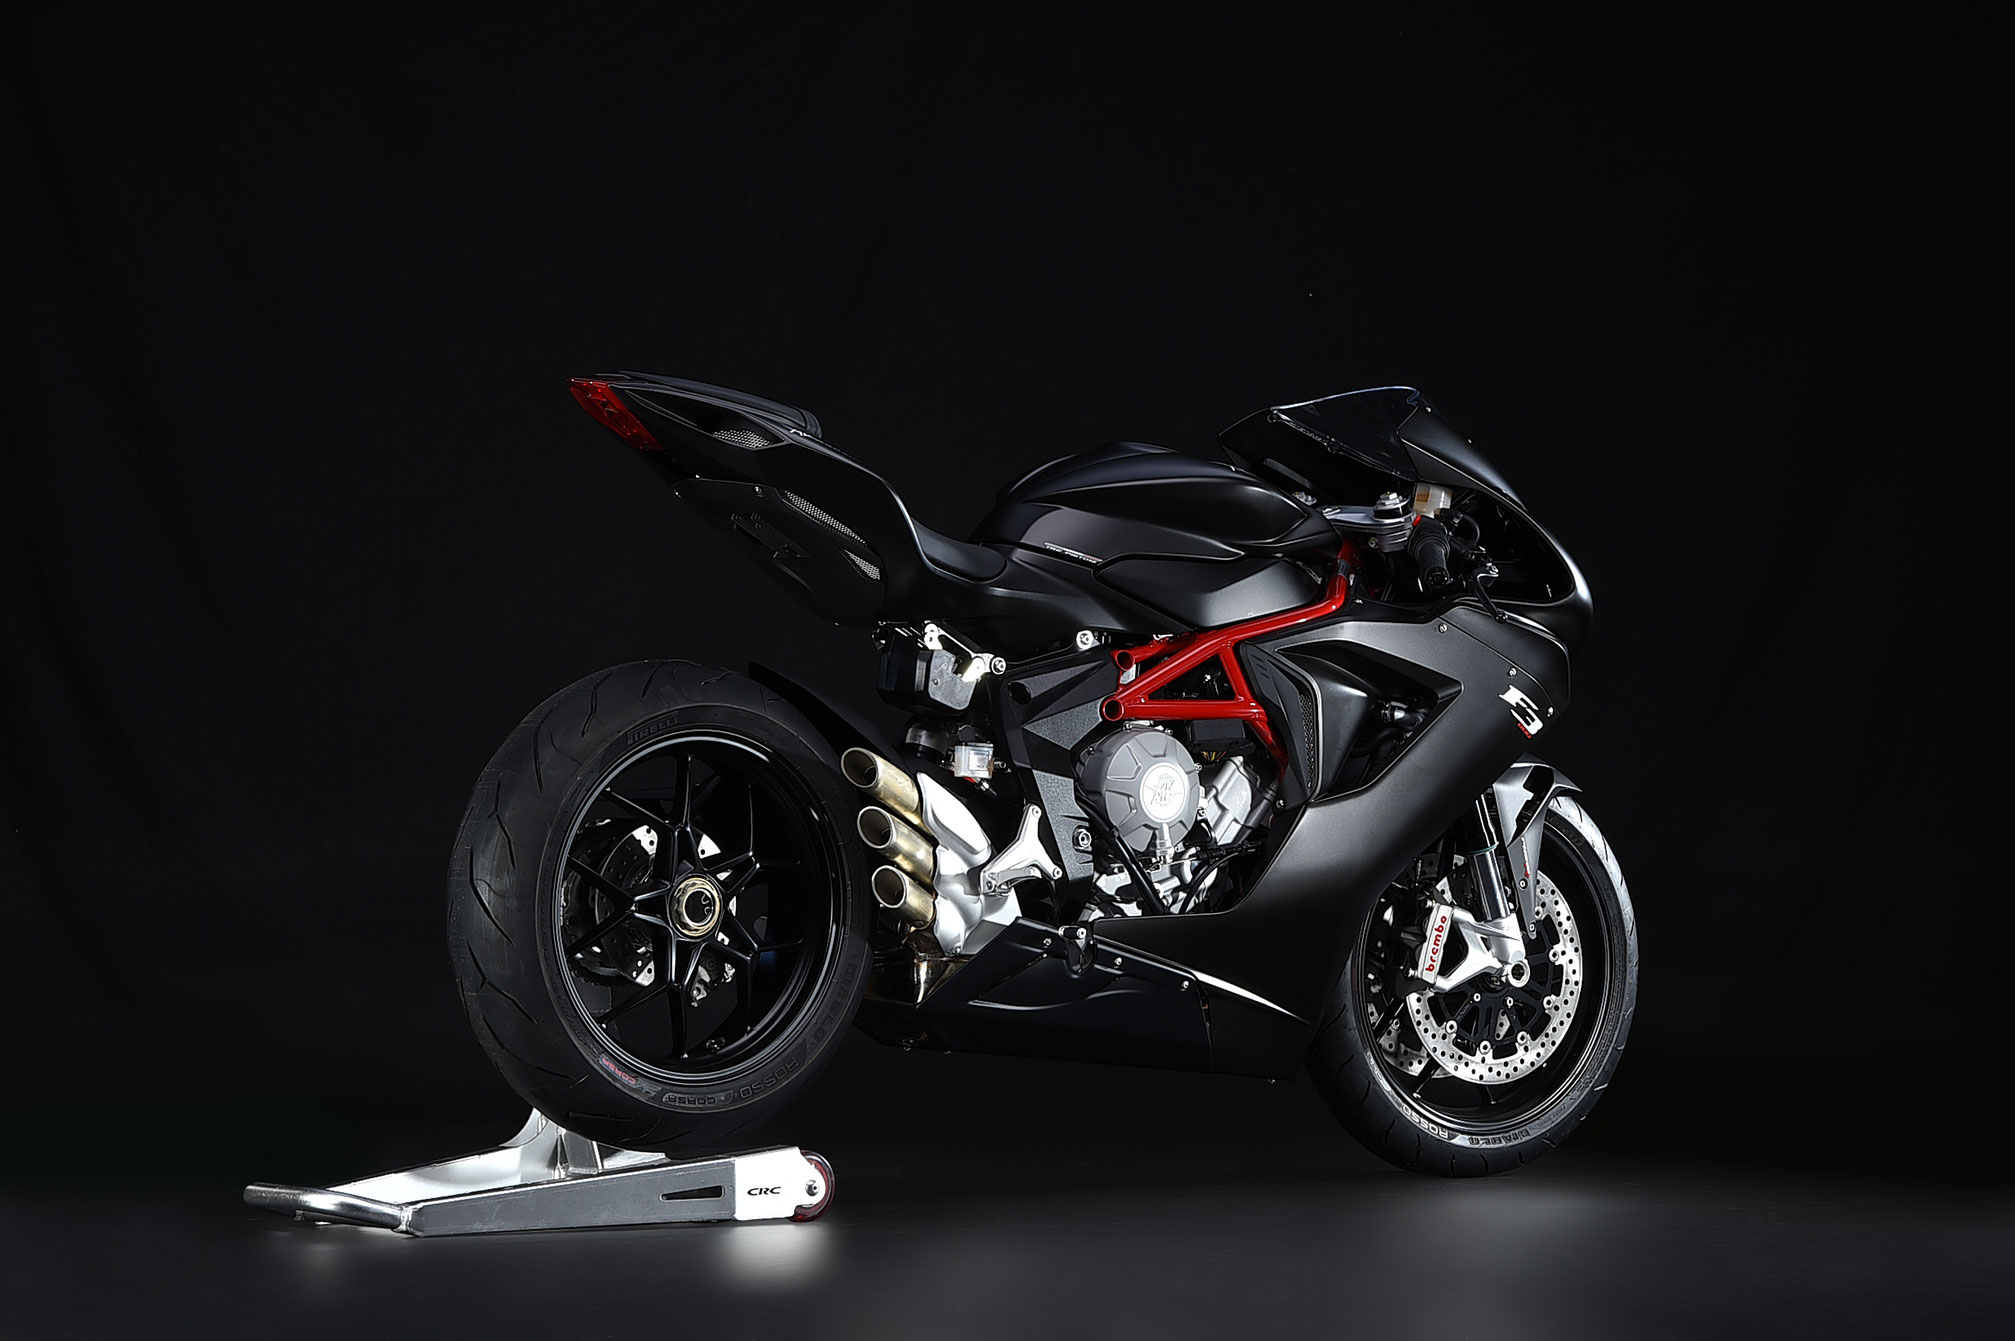 Mv Agusta F3 800 2014 on 4 cylinder race car